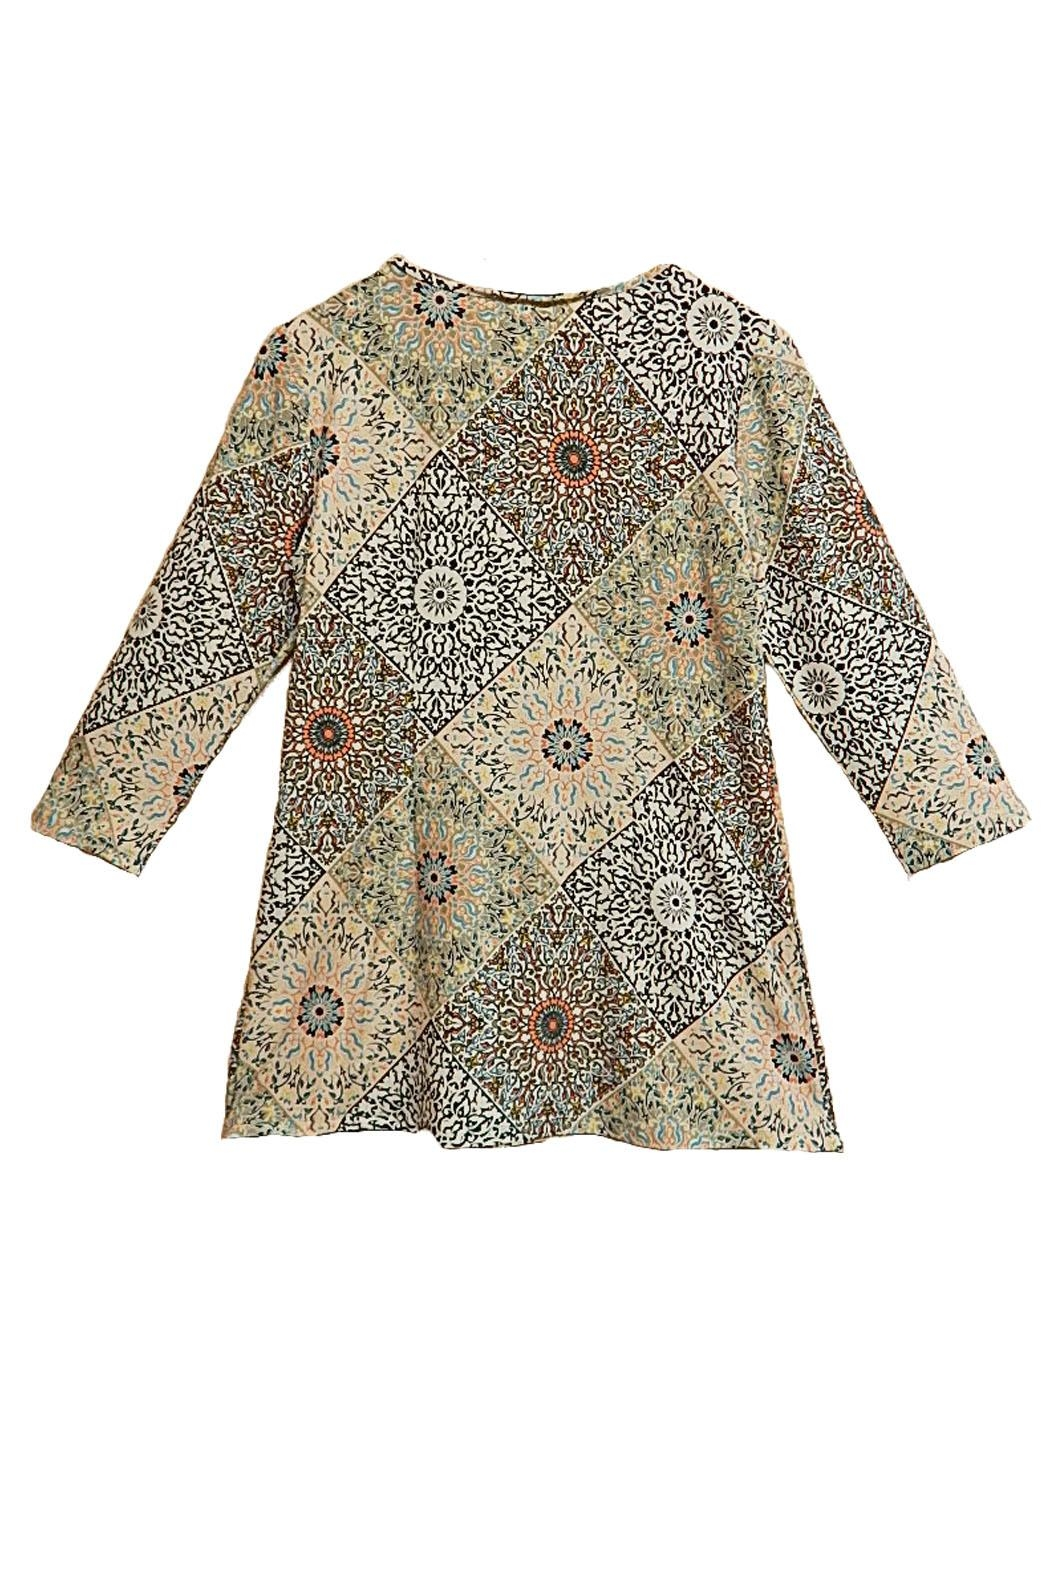 Melissa Paige Paisley Print Top - Front Full Image